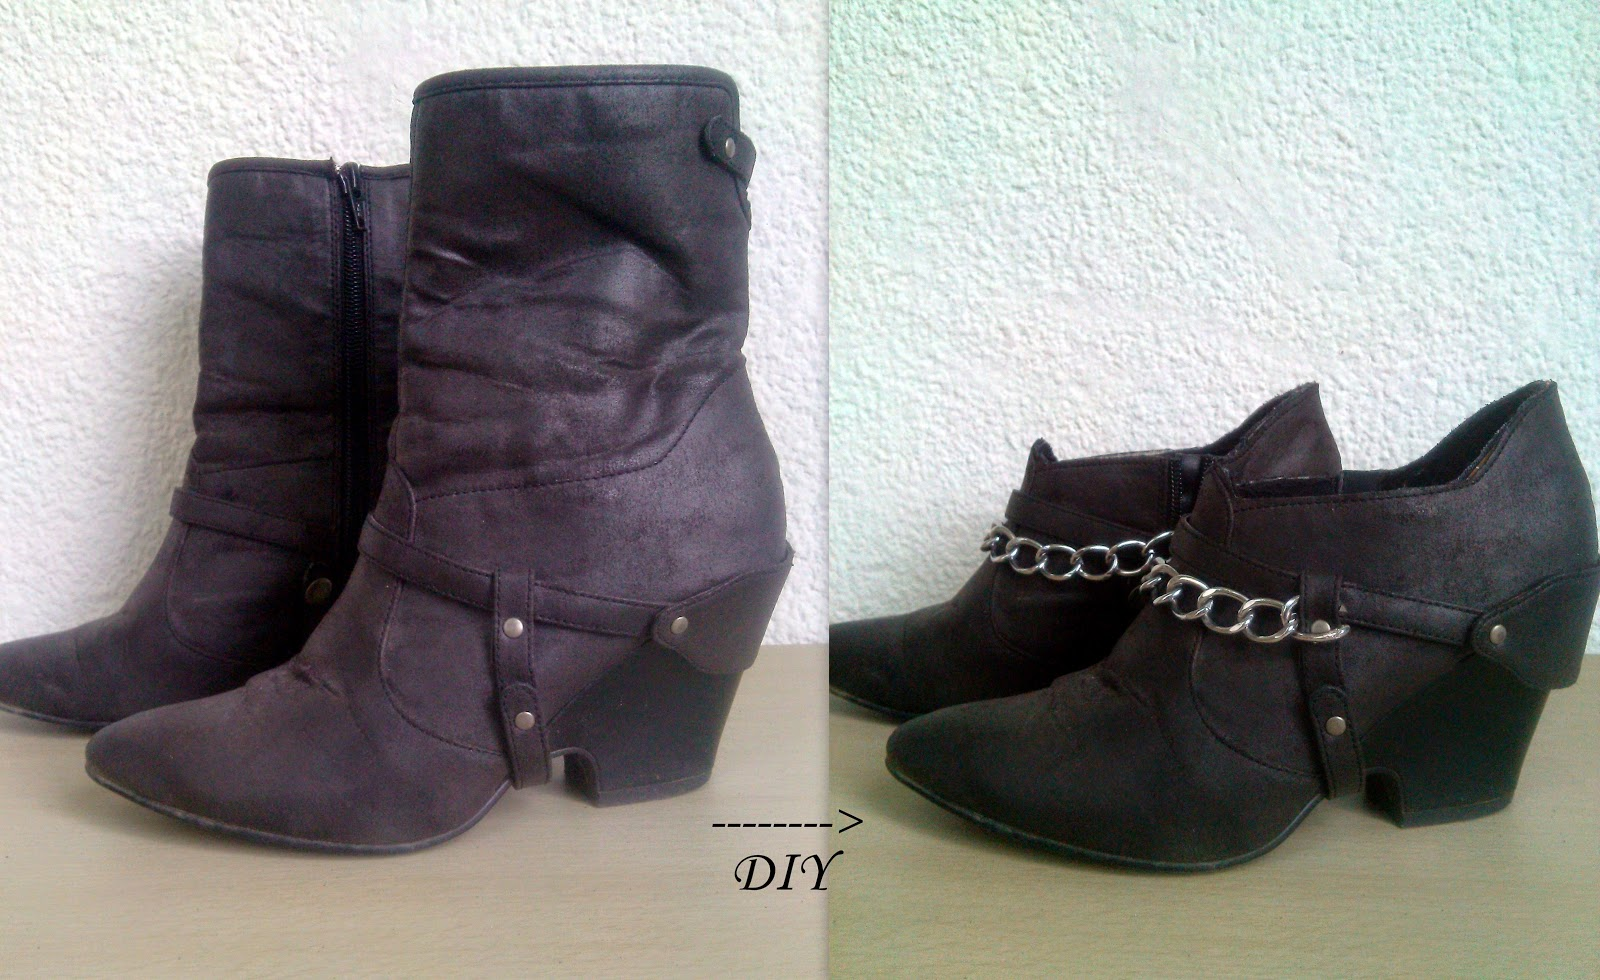 DIY, DIY chain cut boots, zara chain boots